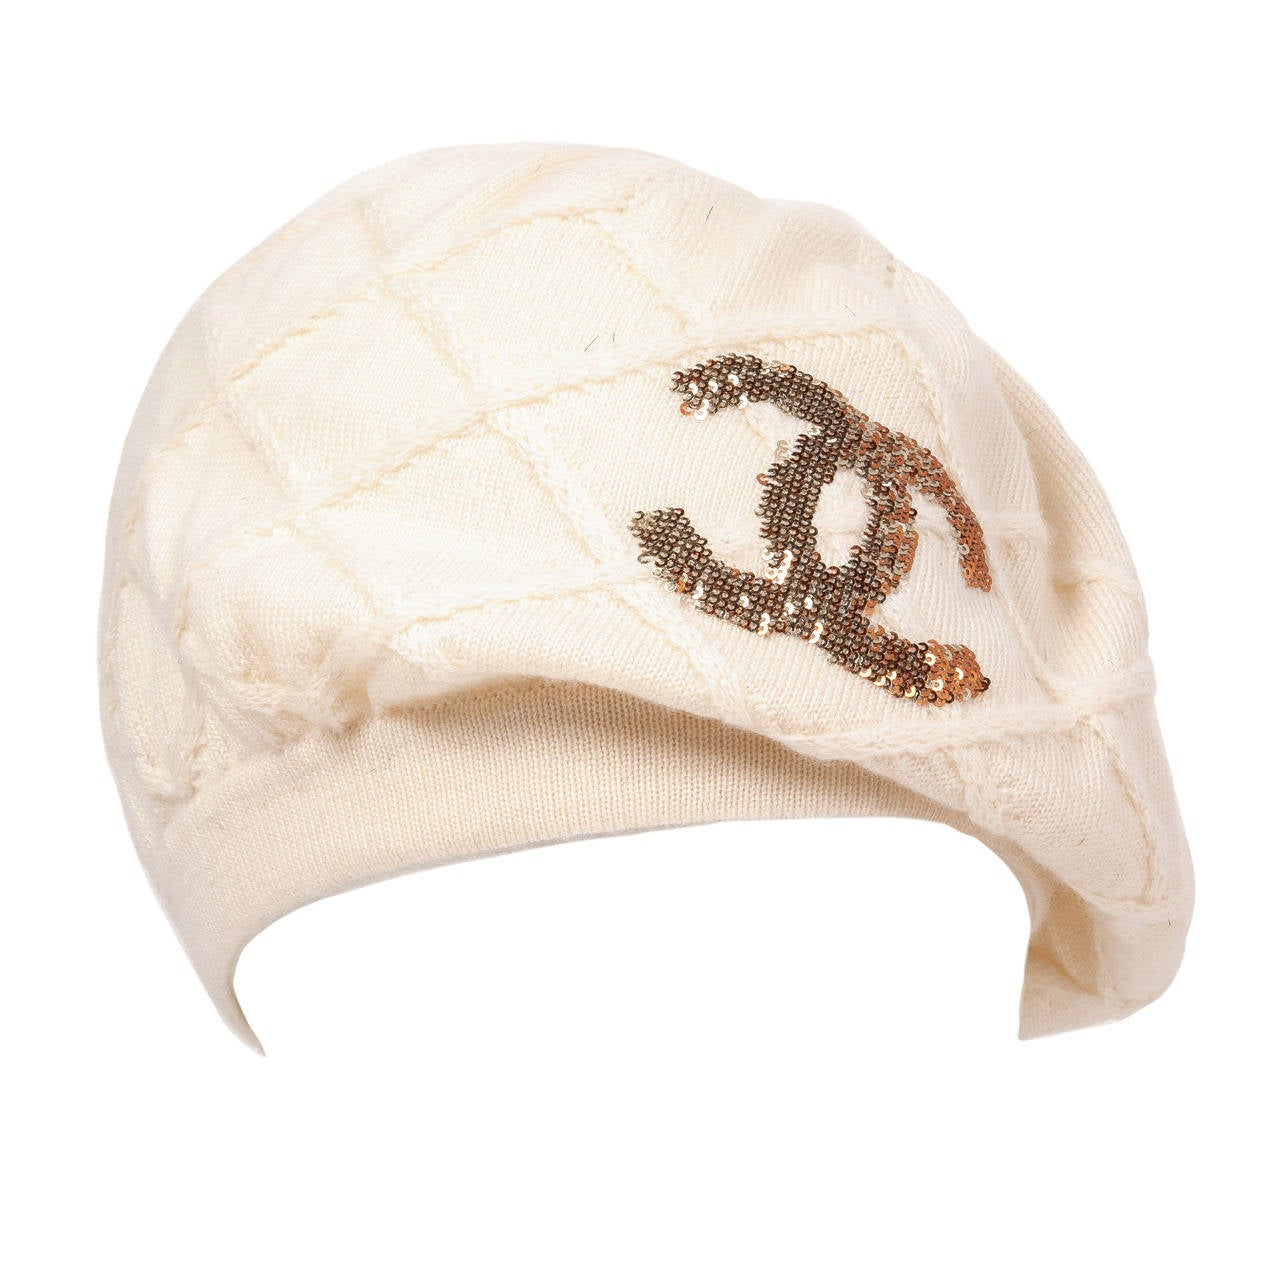 Chanel 100% Cashmere Beret Hat w/CC Logo in Gold & Bronze Sequins For Sale